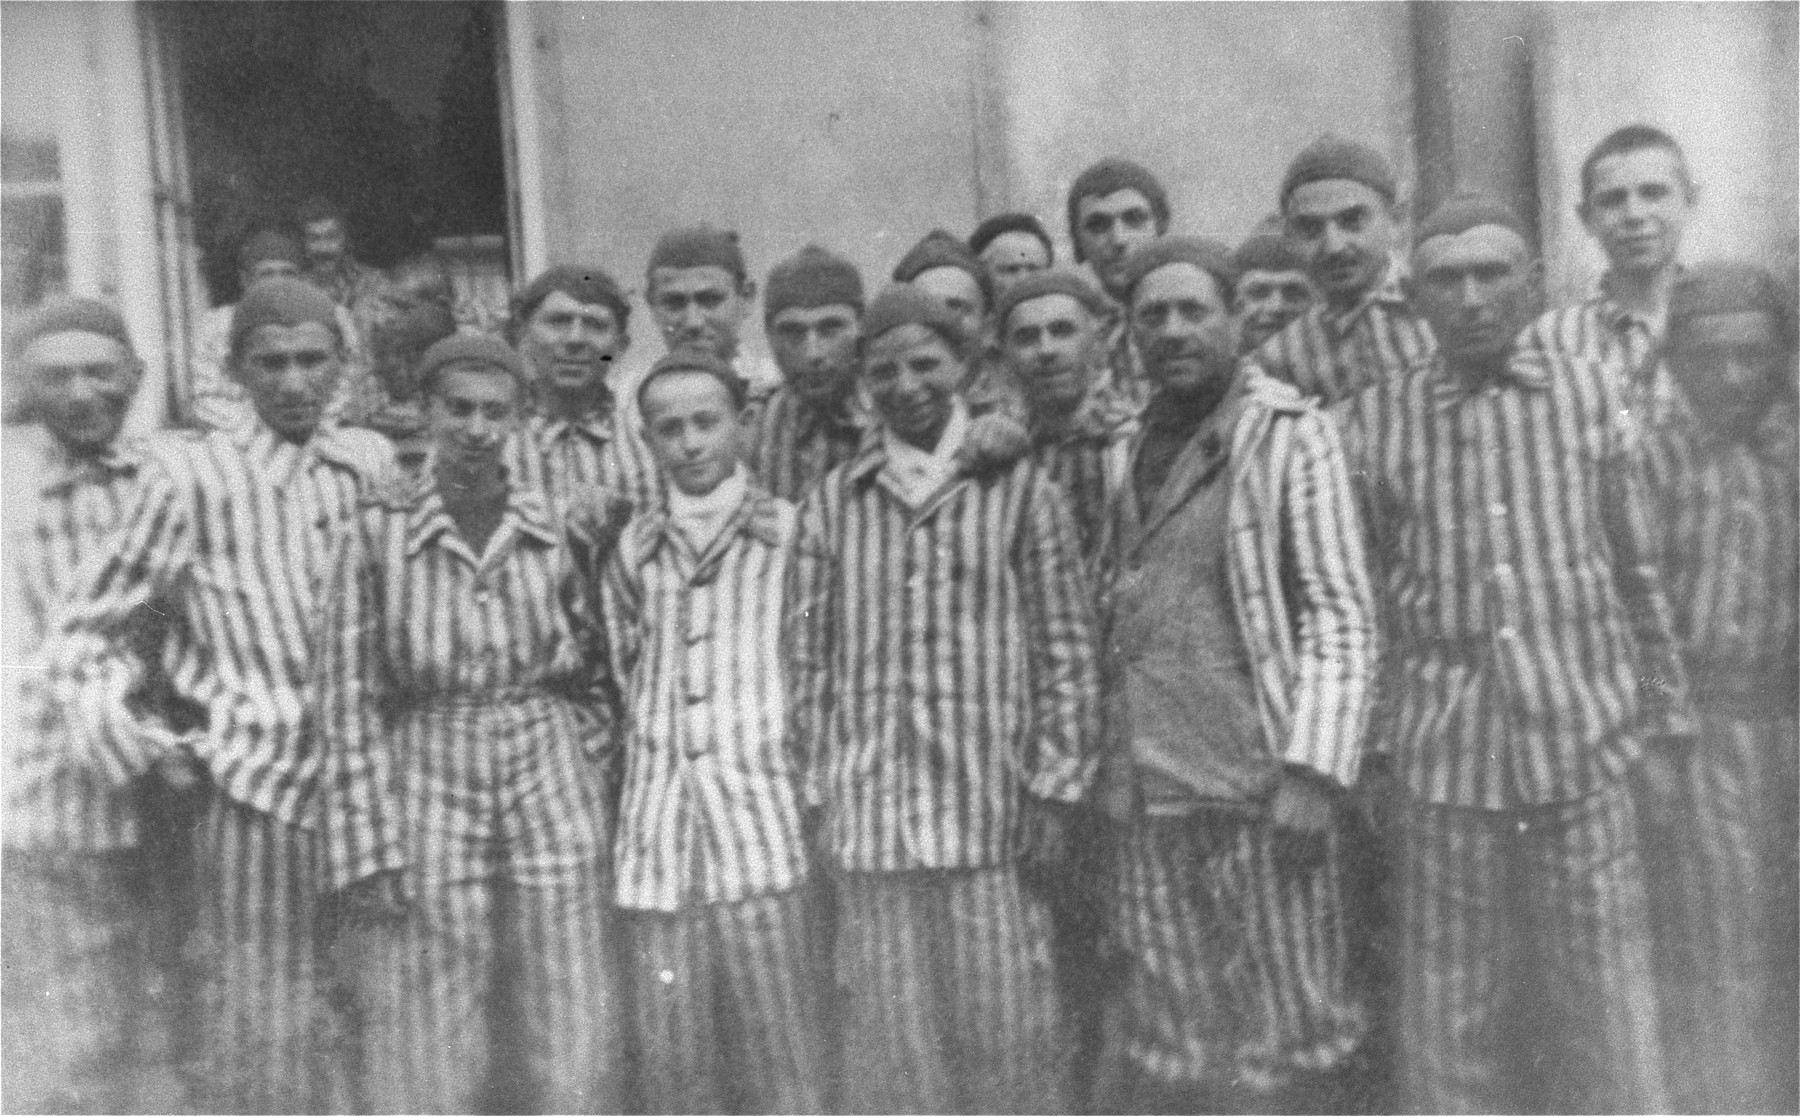 A group of survivors in Dachau.